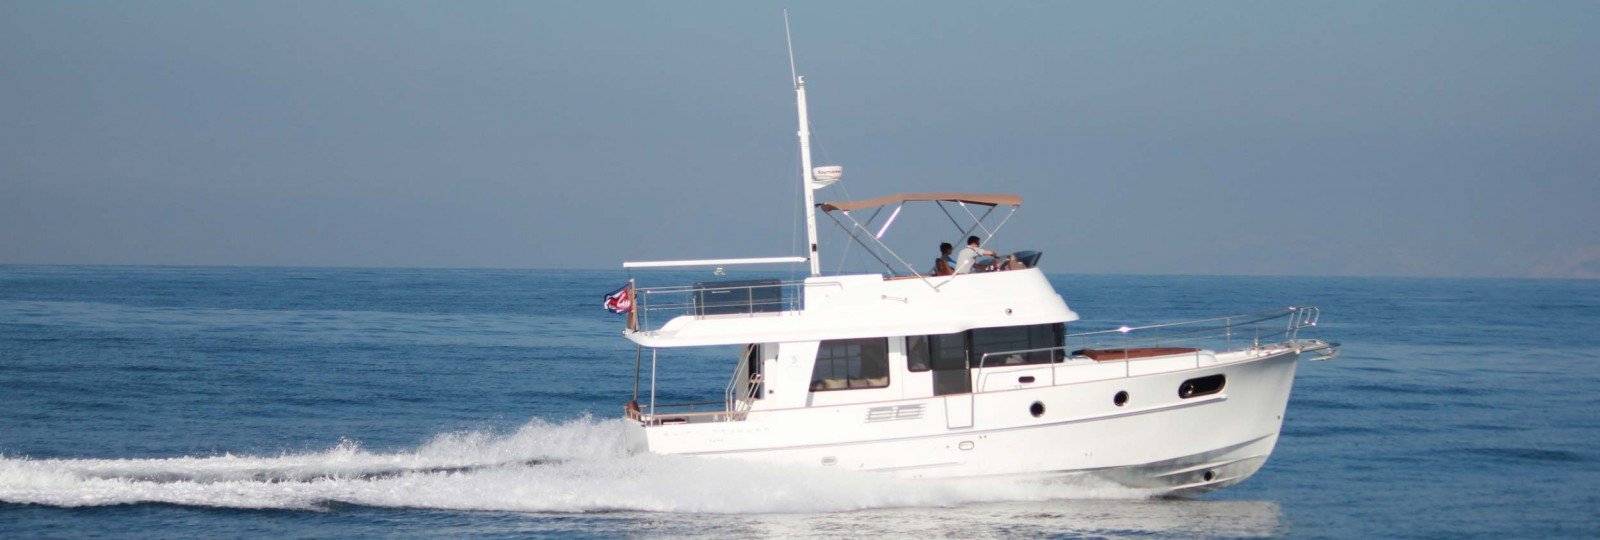 Beneteau Swift Trawler 44 running